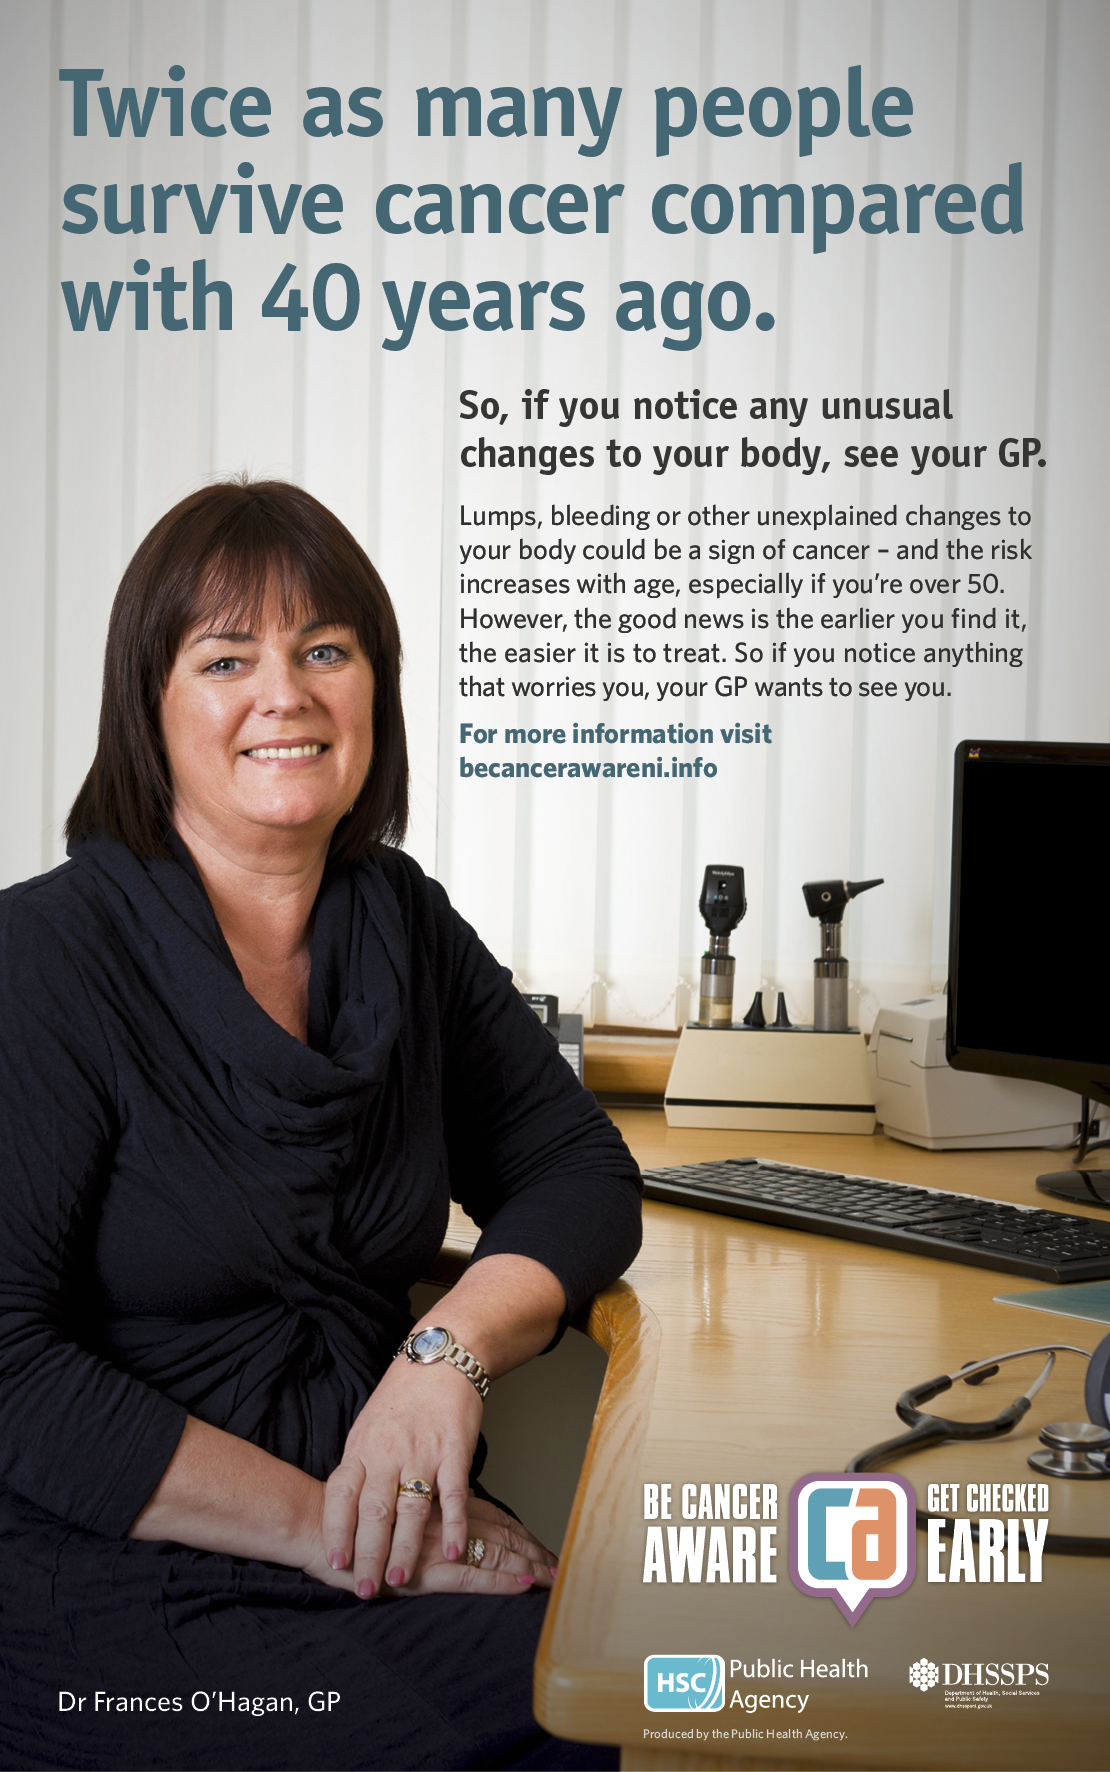 Be Cancer Aware poster featuring Dr Frances O'Hagan, GP